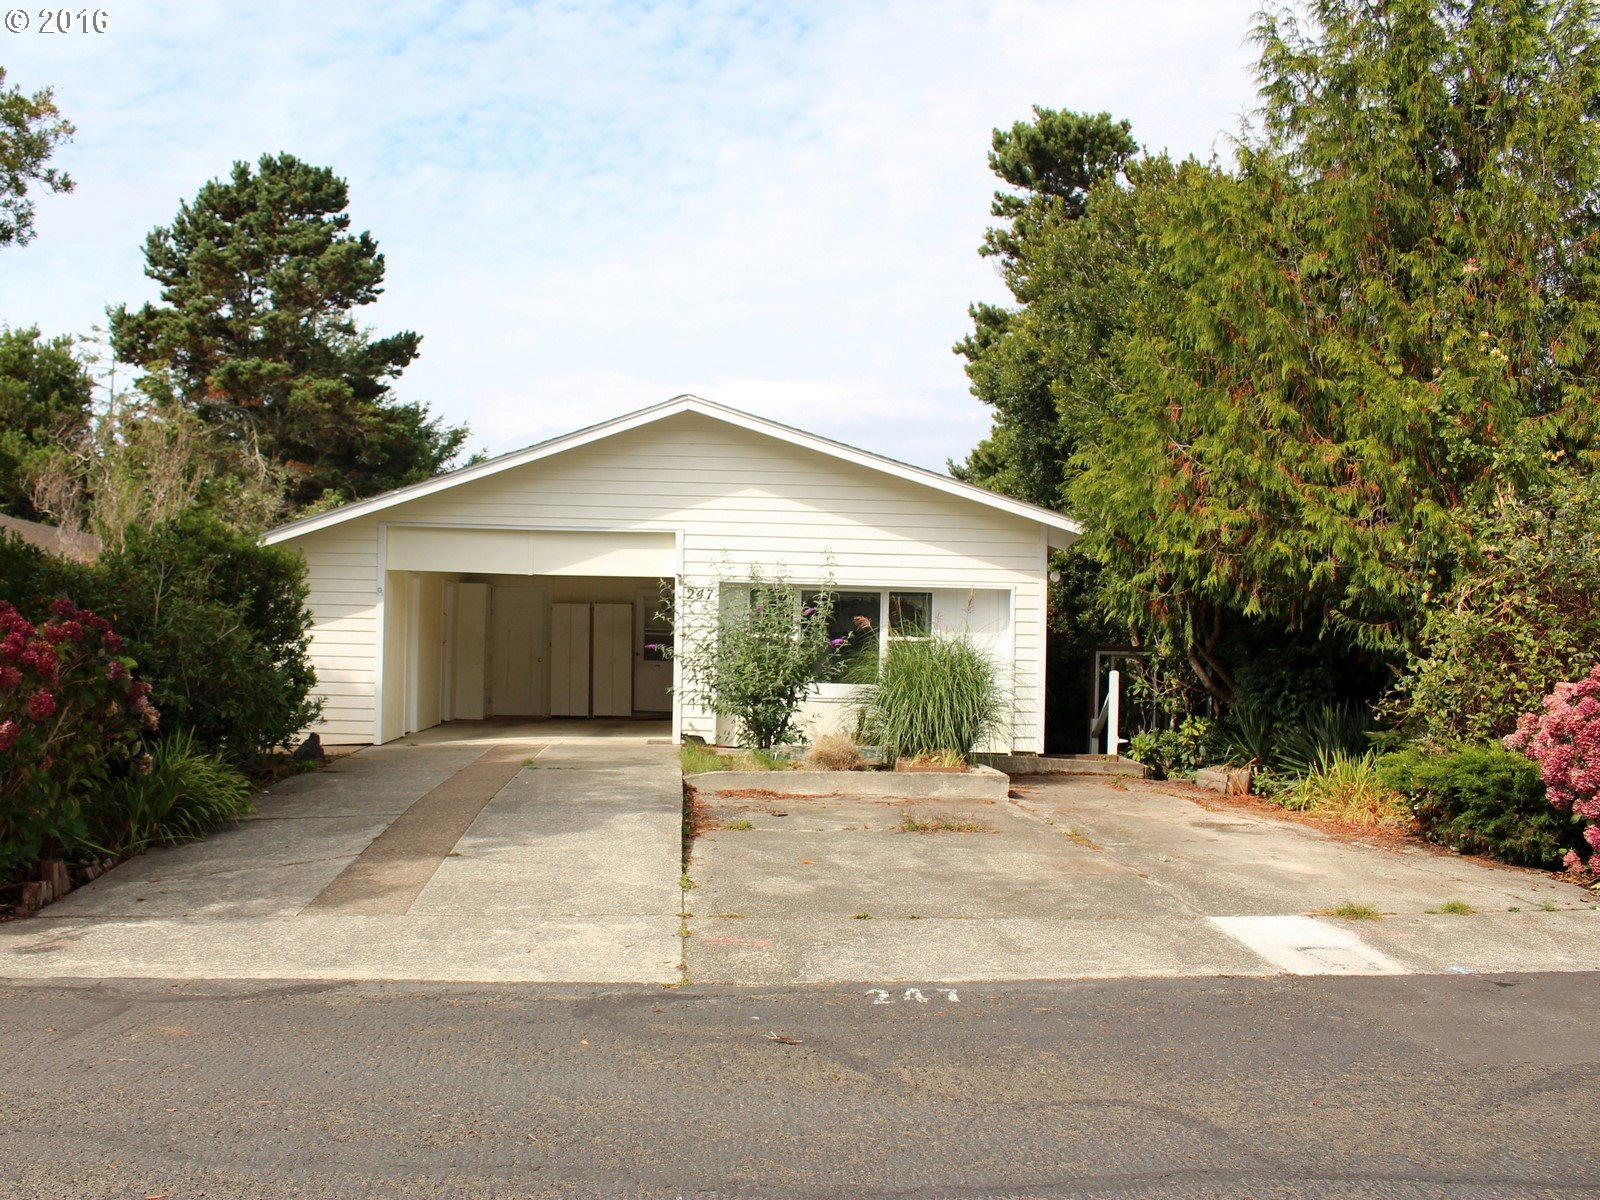 1600 RHODODENDRON DR 247, Florence, OR 97439